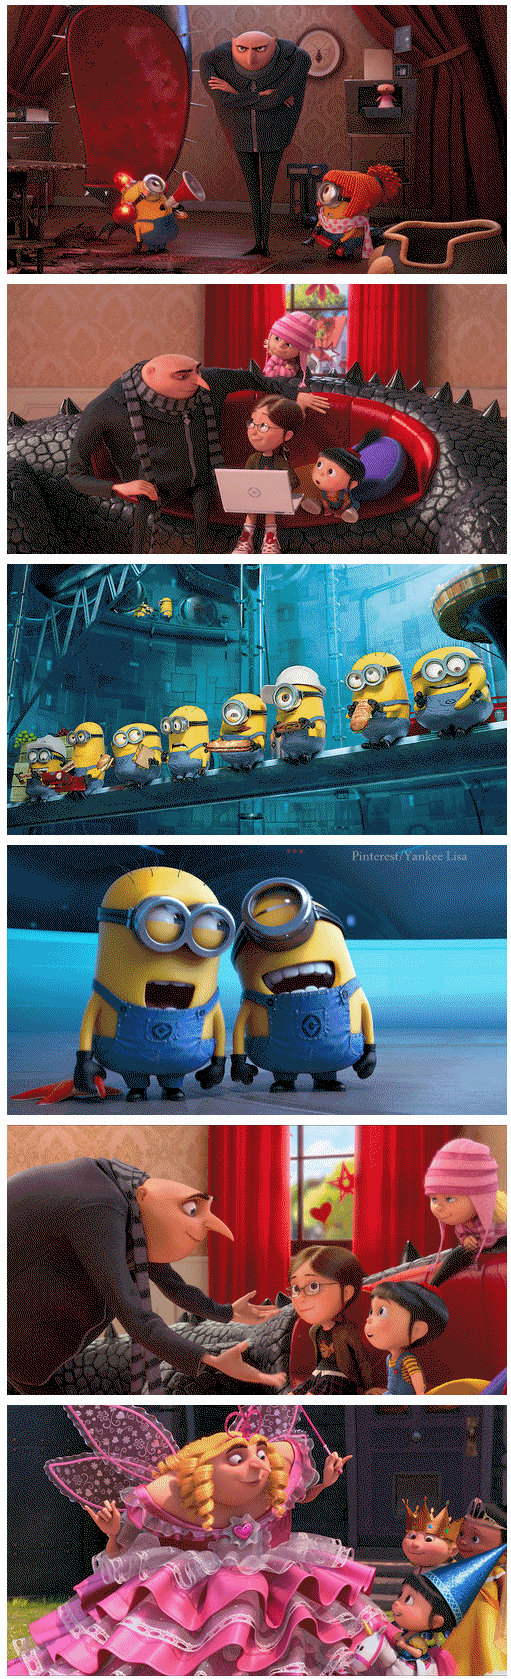 Despicable Me 2 Is Of Course My Favorite Movie I Can Watch It Over And Over And Never Get Tired Of It It Still Puts Personaje Minion Divertido Minions Minion